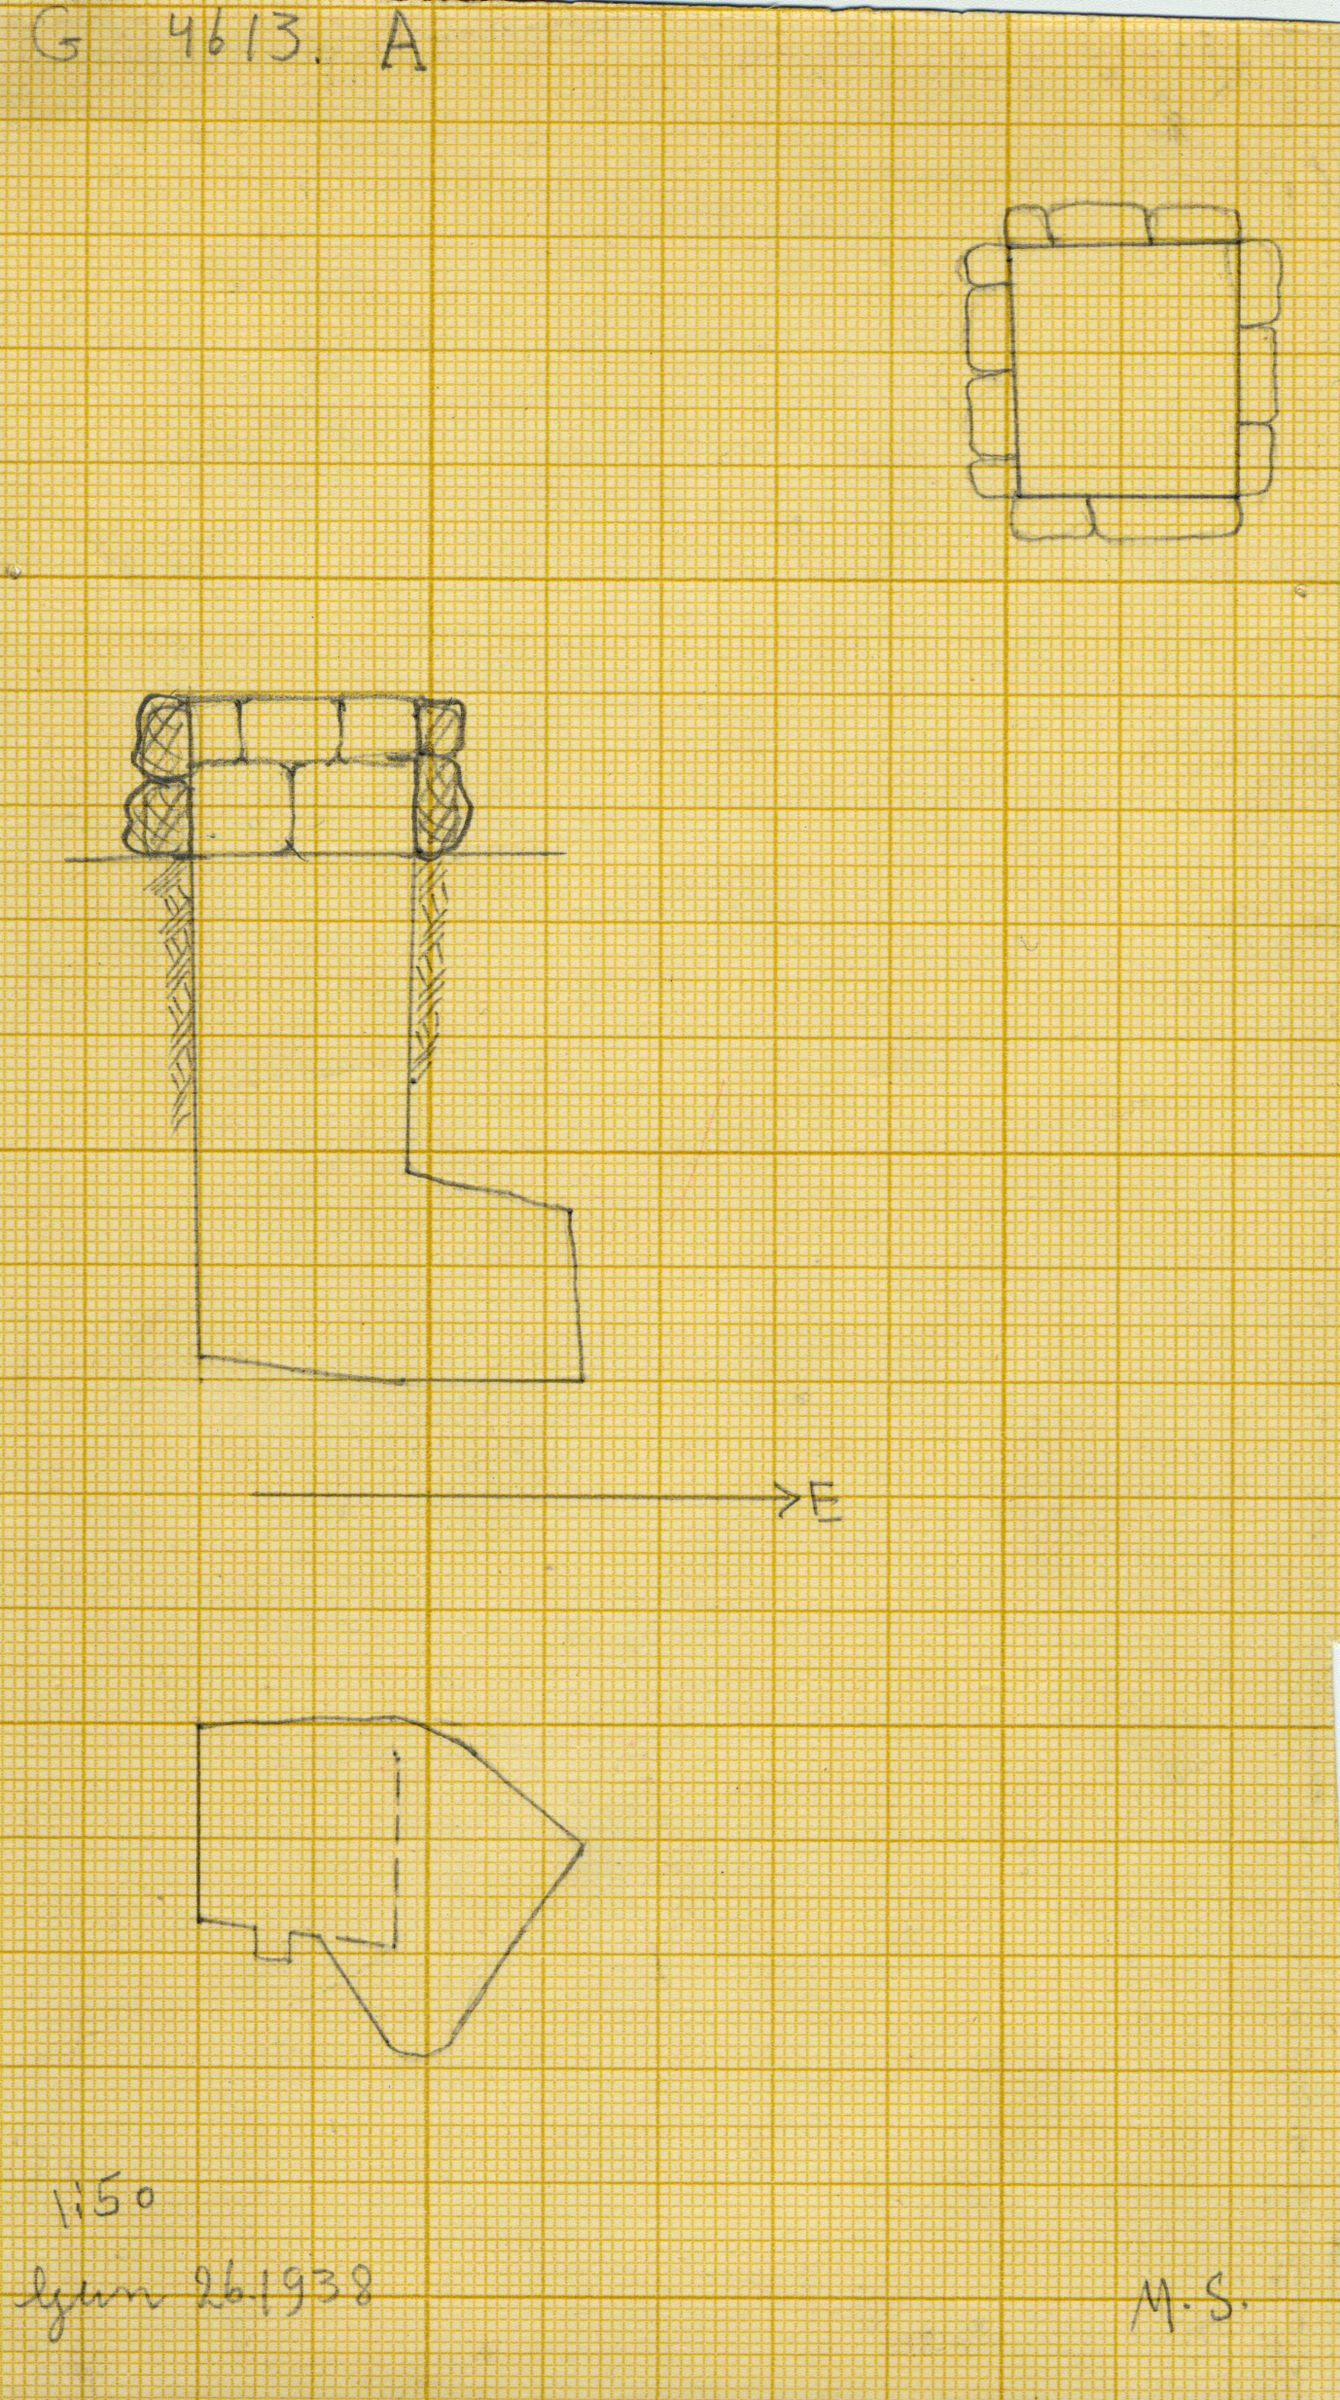 Maps and plans: G 4613, Shaft A